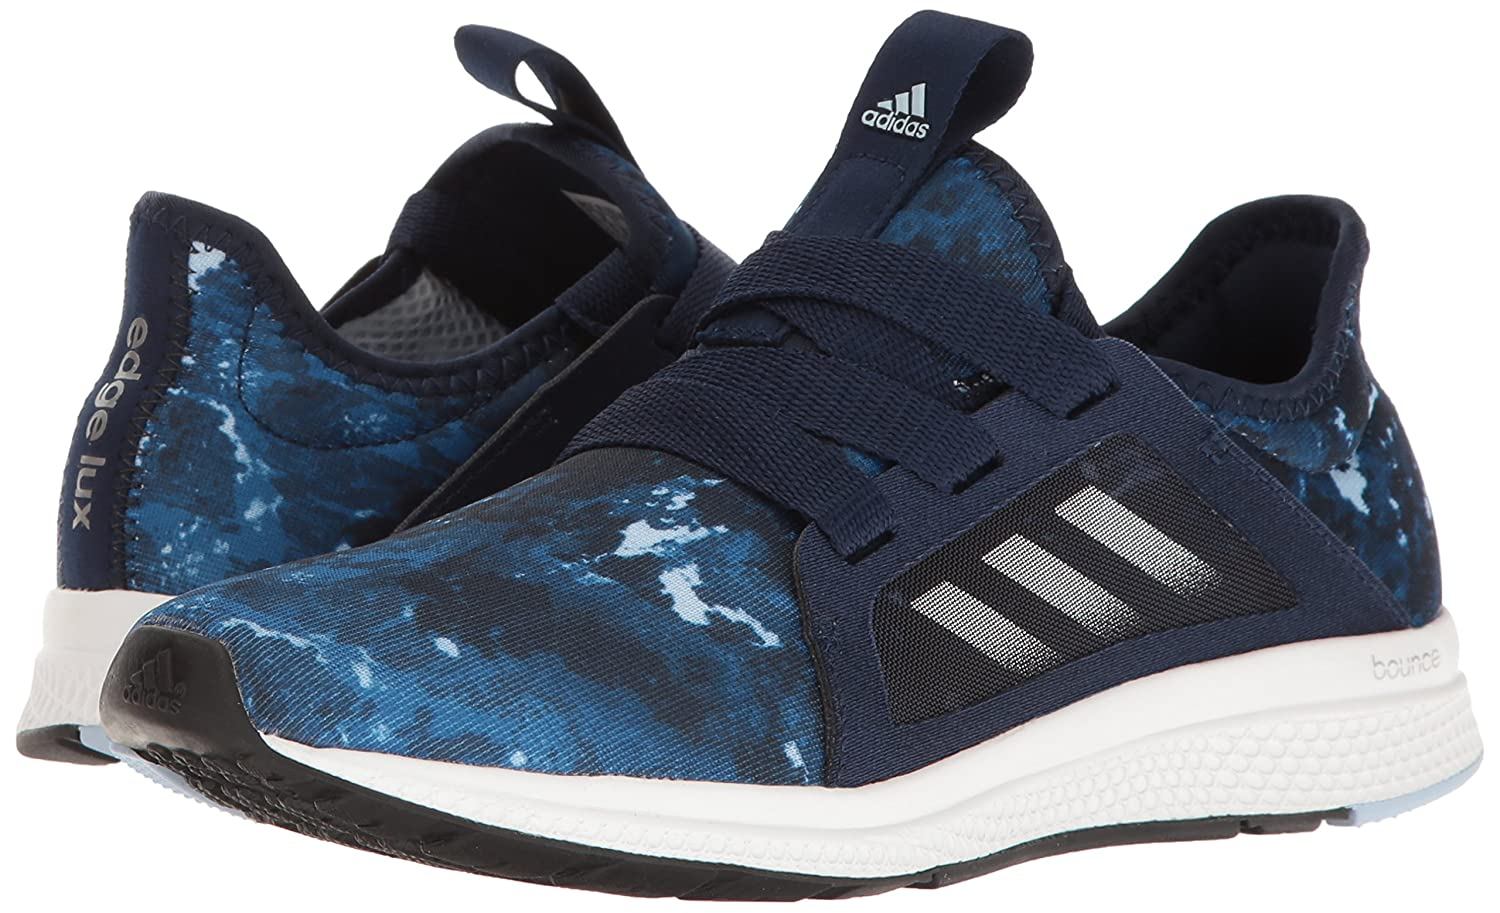 adidas Women's Edge Lux W Running Shoe B01H7WYJP0 6 Blue B(M) US|Collegiate Navy/Light Blue/Easy Blue 6 899973